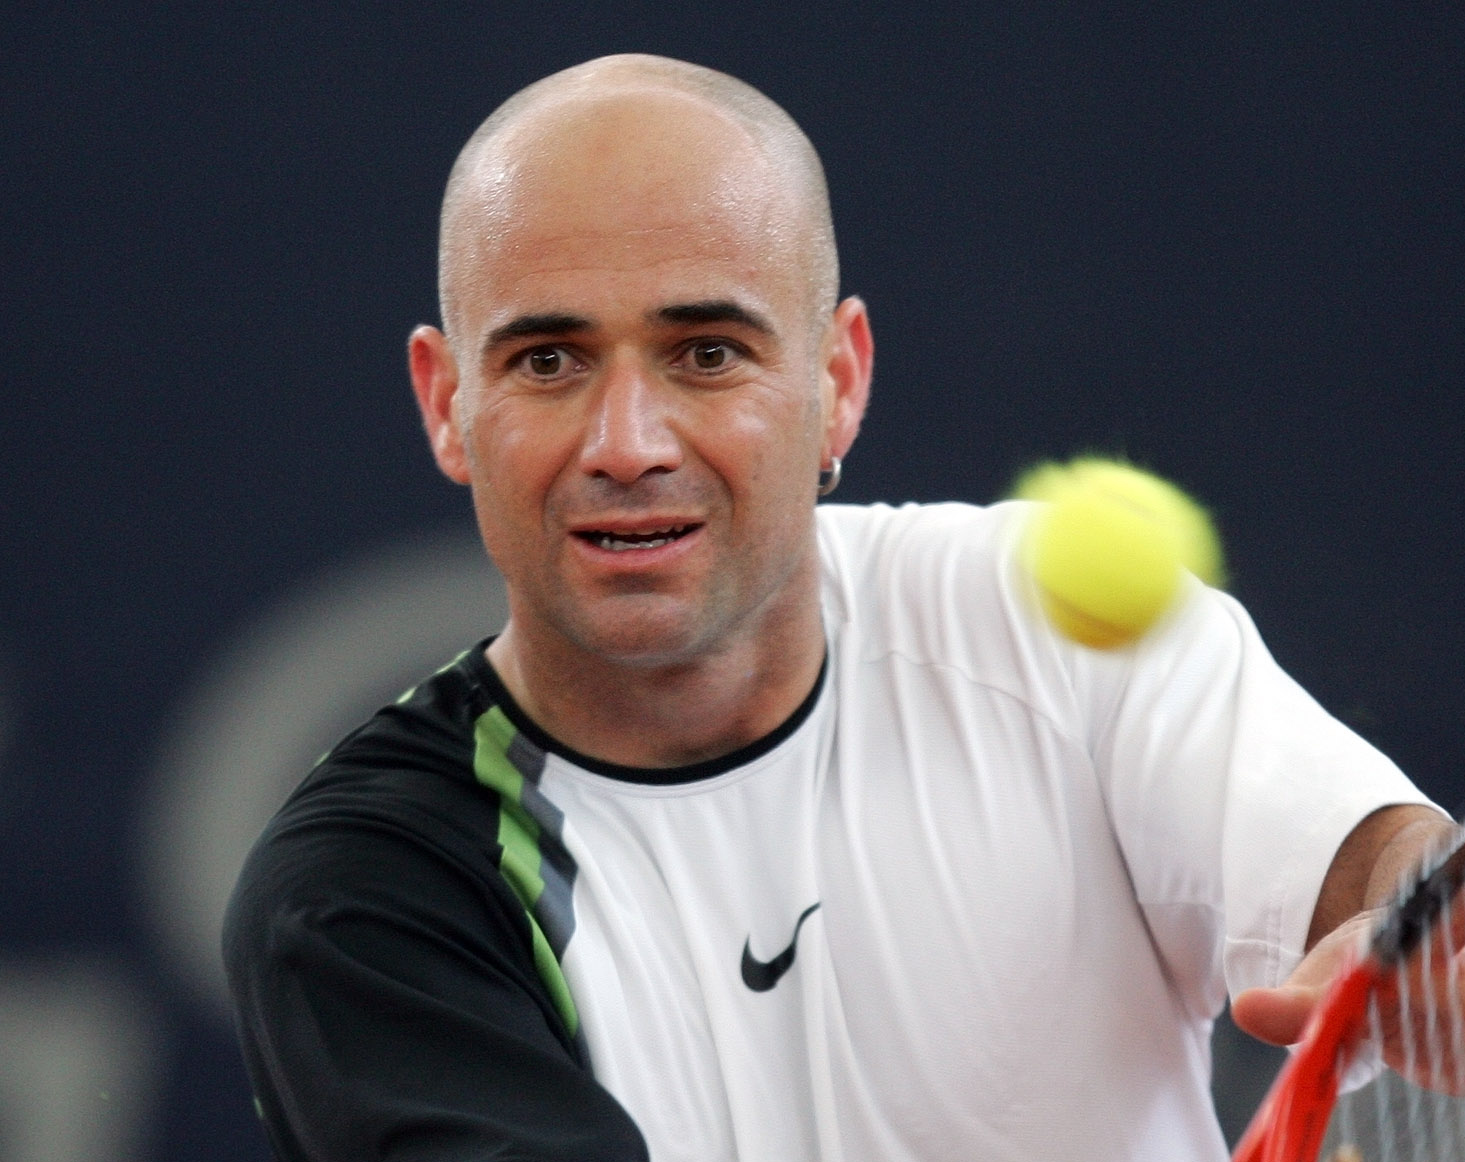 Andre Agassi on his father s interaction with Pete Sampras